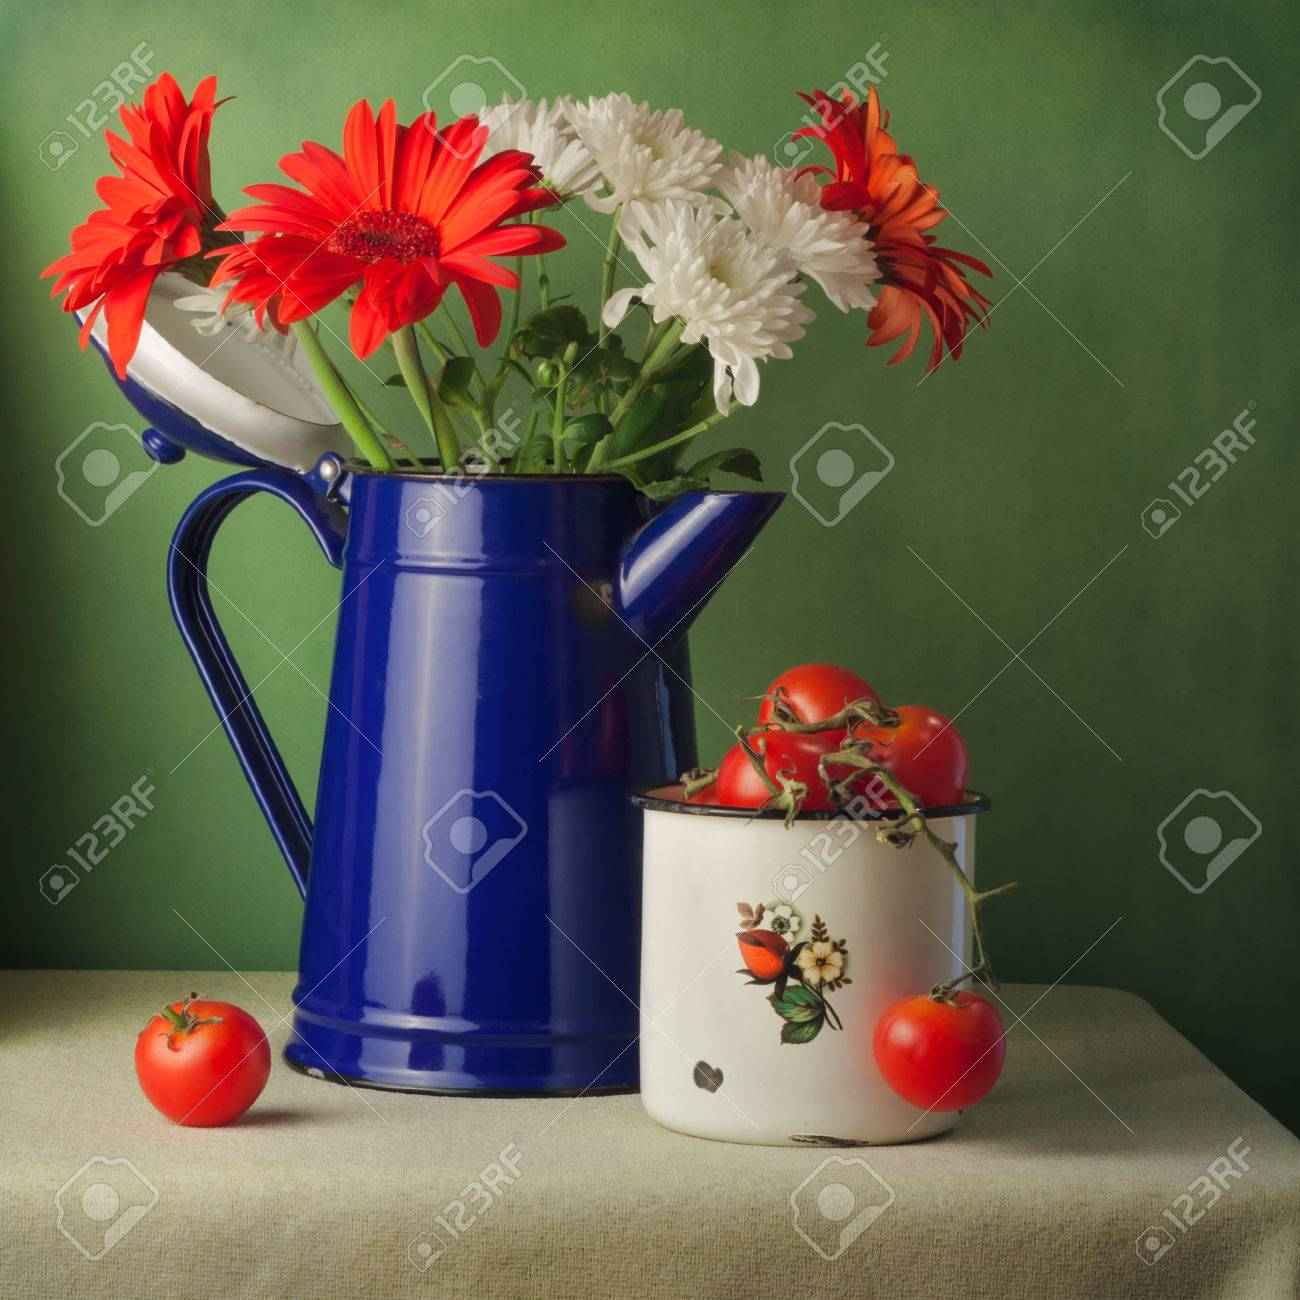 Still life flowers stock photos royalty free still life flowers vintage still life with flowers and cherry tomatoes reviewsmspy